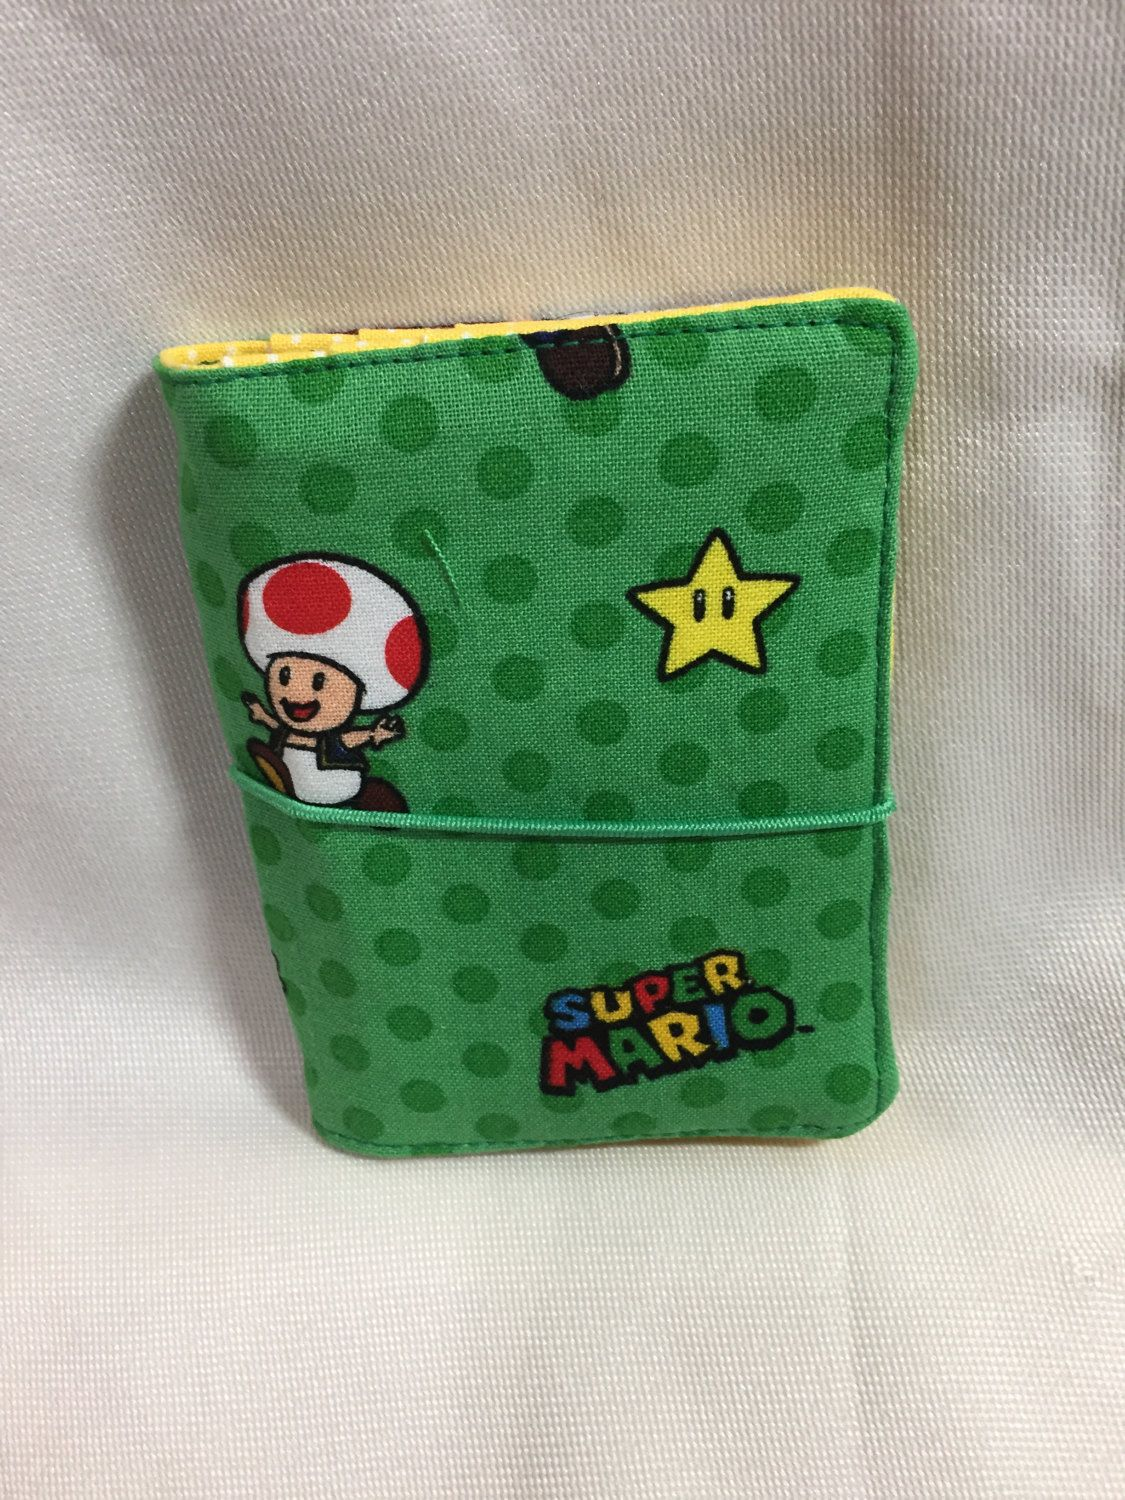 Super mario world business card holderwallet by mommymarycrafts on super mario world business card holderwallet reheart